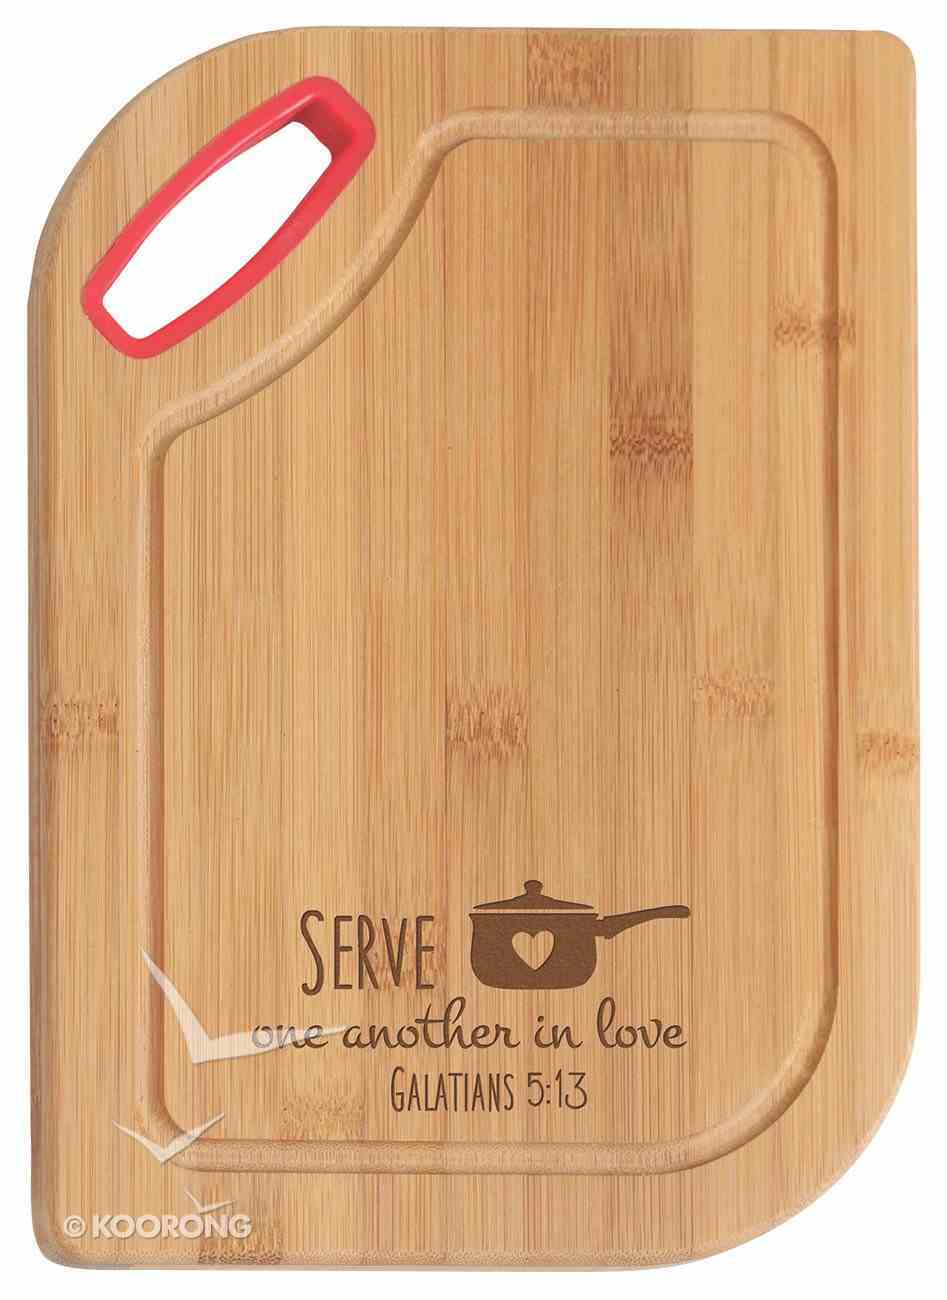 Hardwood Bamboo Cutting Board: Serve One Another, Galatians 5:13 Homeware